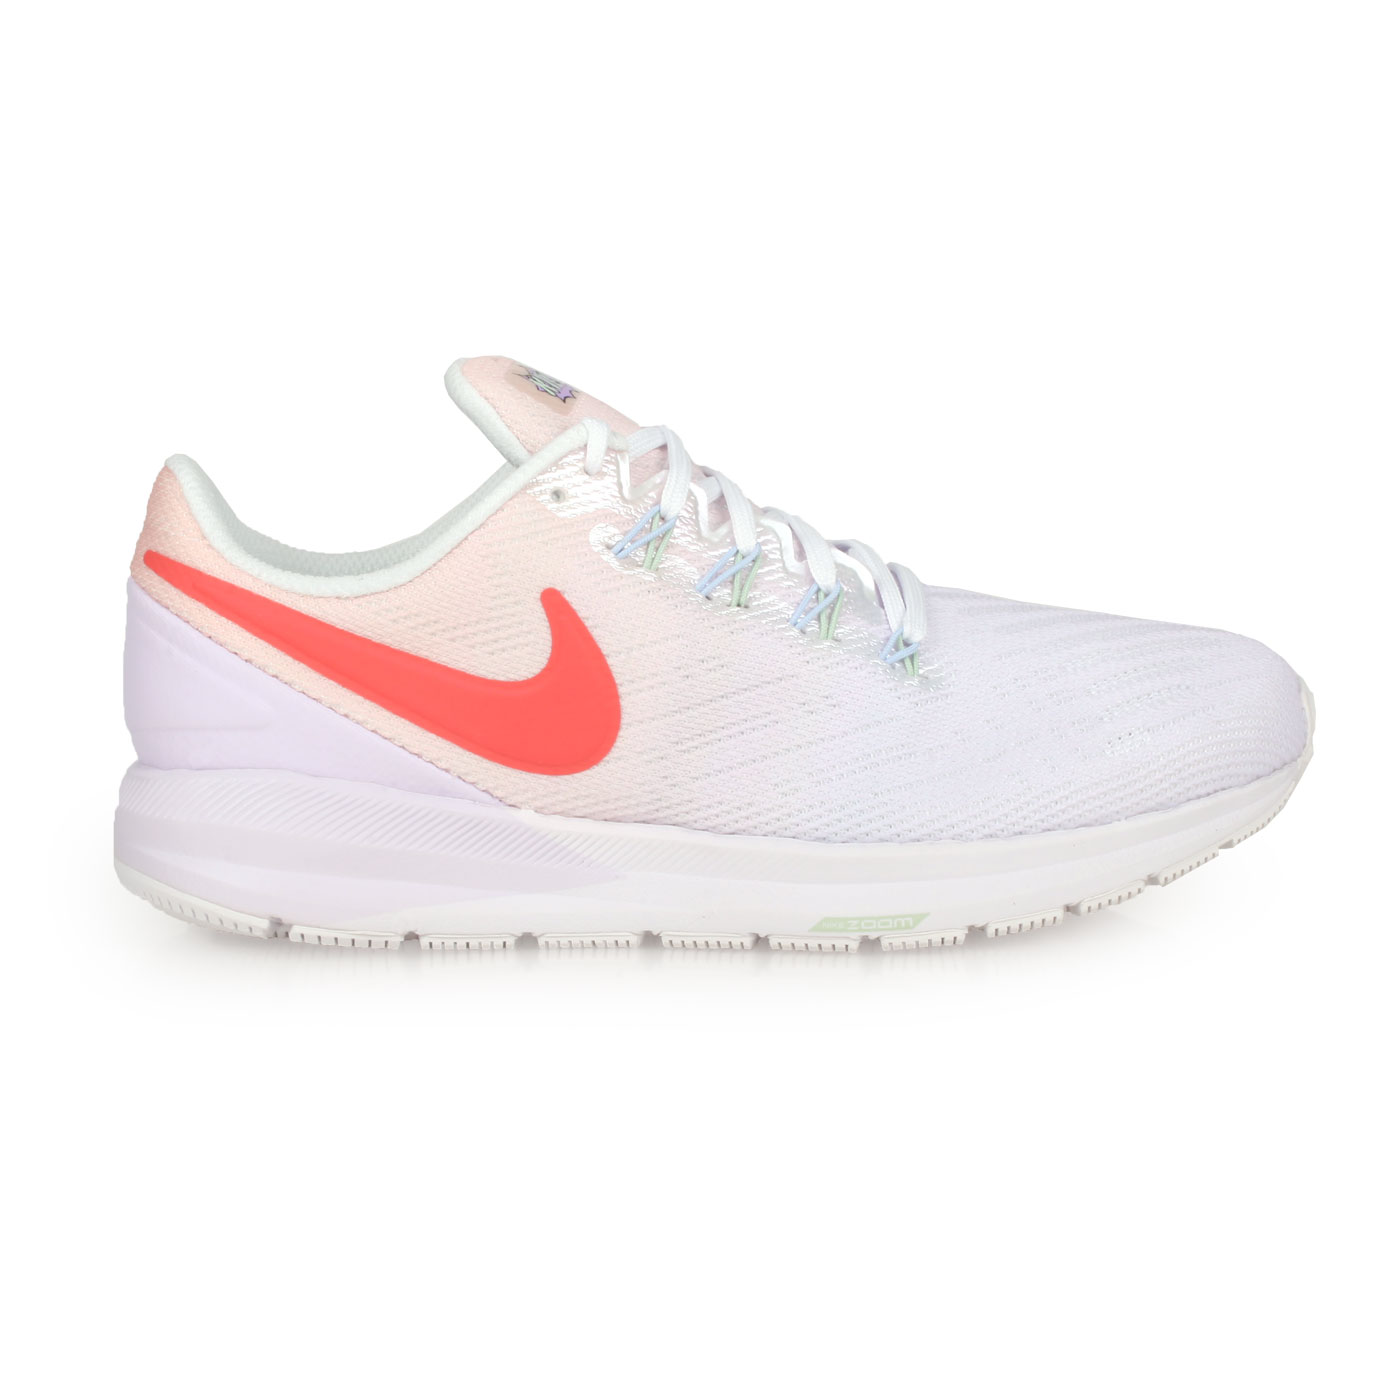 NIKE 女款慢跑鞋  @W AIR ZOOM STRUCTURE 22@CW2640681